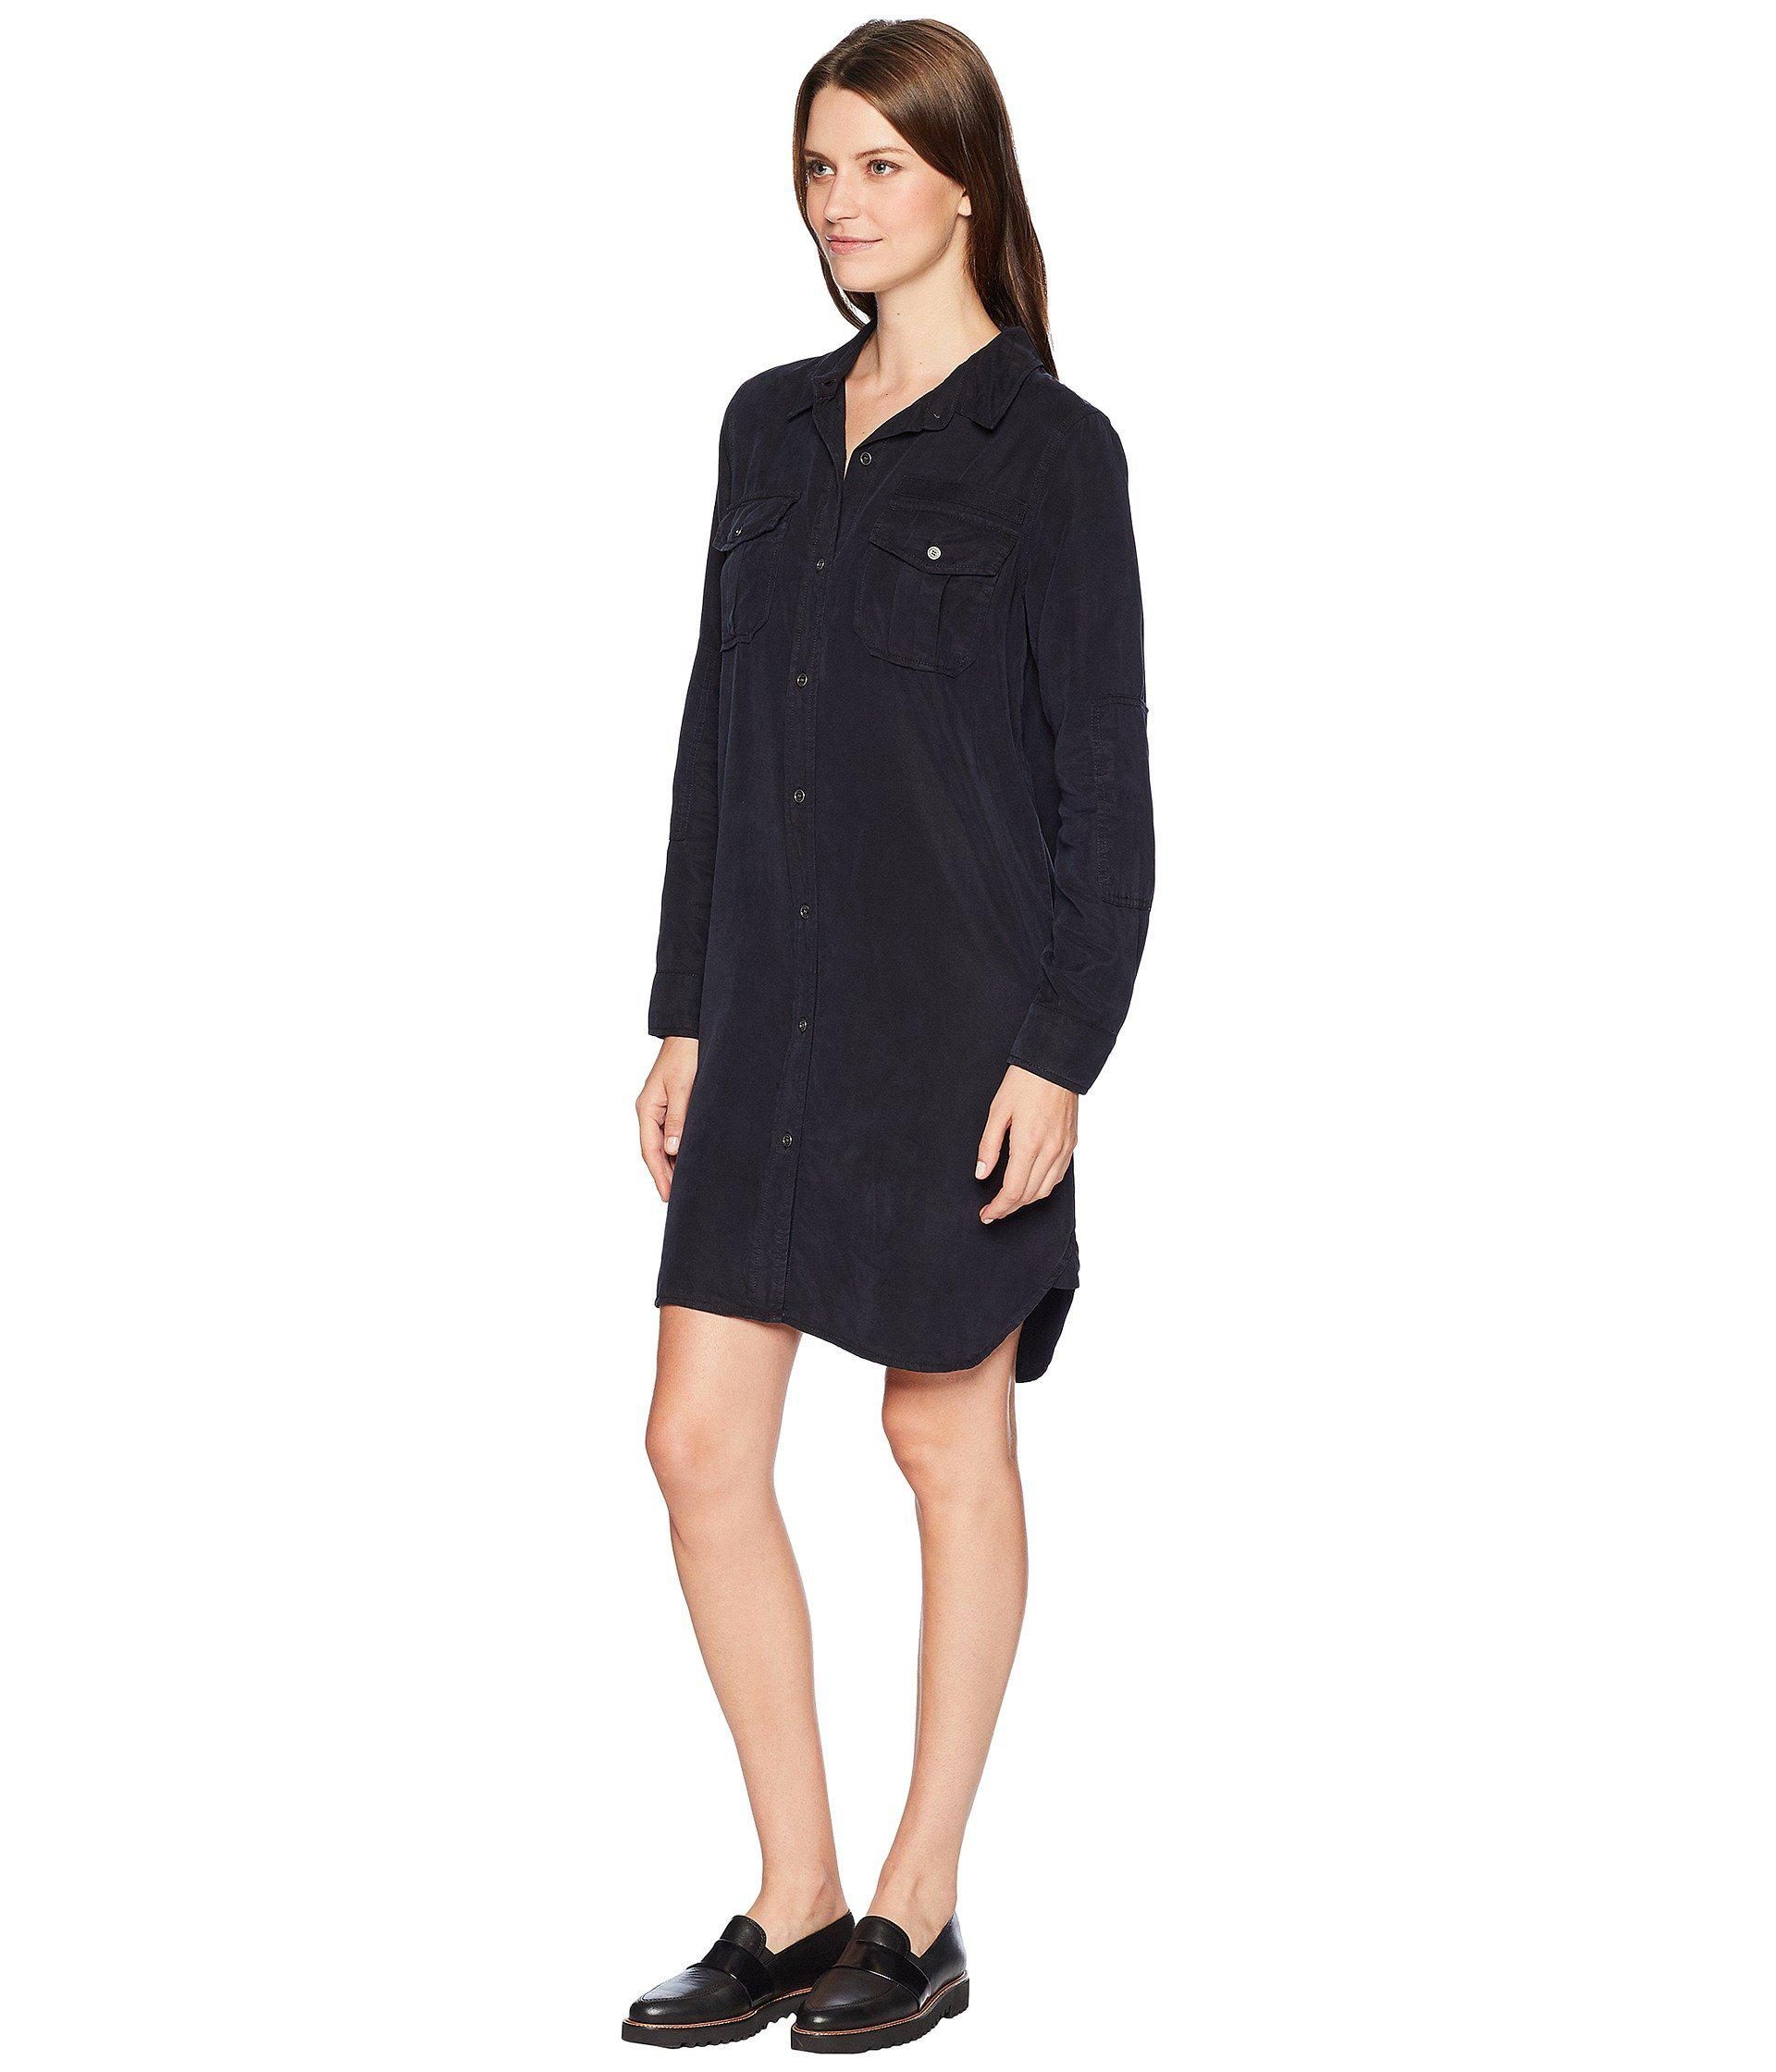 8a4c5d6a25 Lyst - Two By Vince Camuto Long Sleeve Lightweight Two-pocket Button Down  Dress in Blue - Save 52%